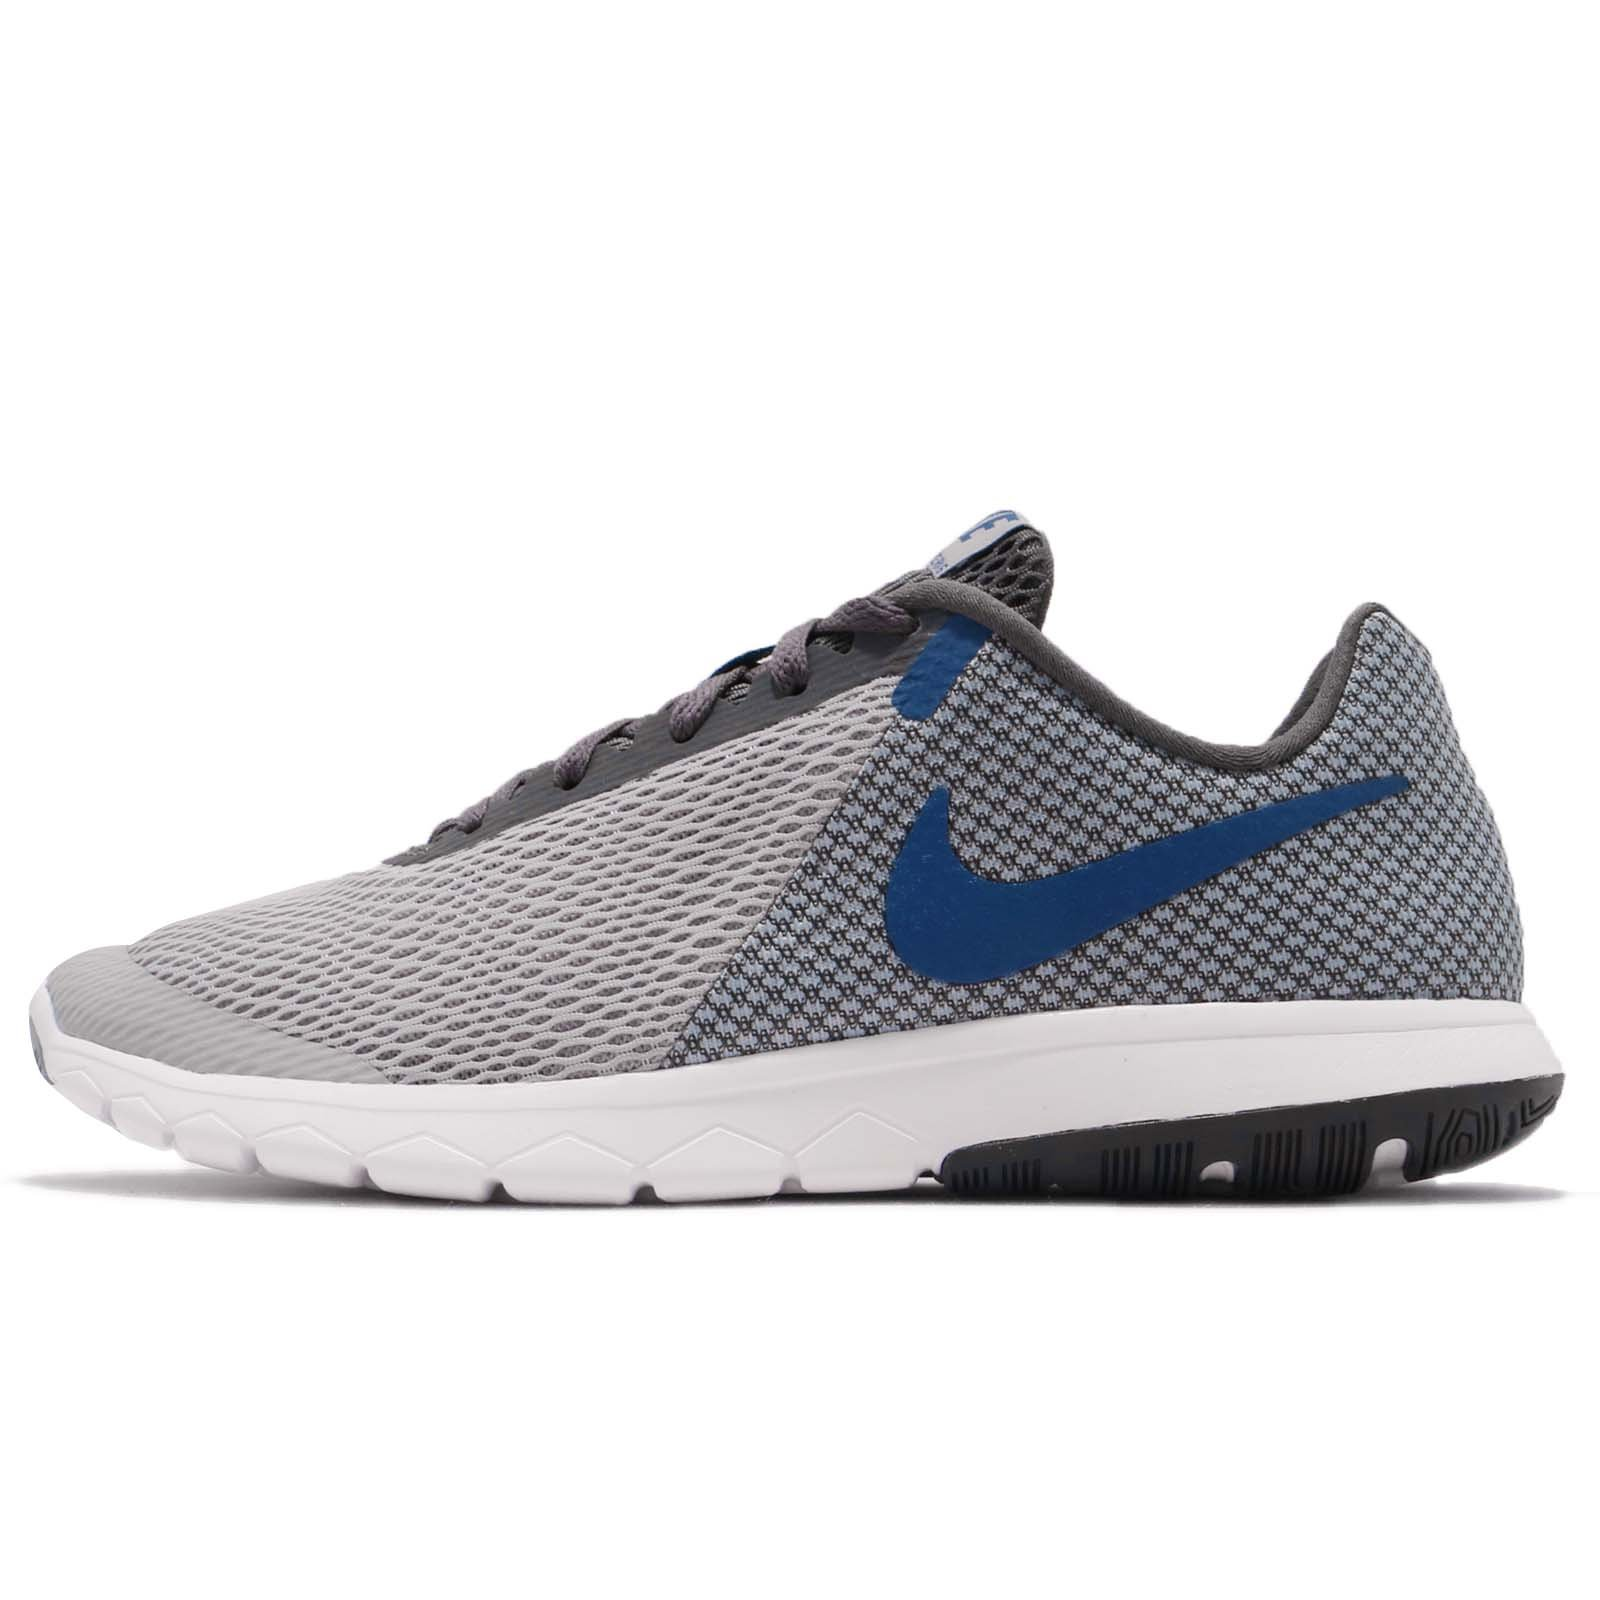 02ee28477d92 Galleon - NIKE Flex Experience RN 6 Men s Running Shoes